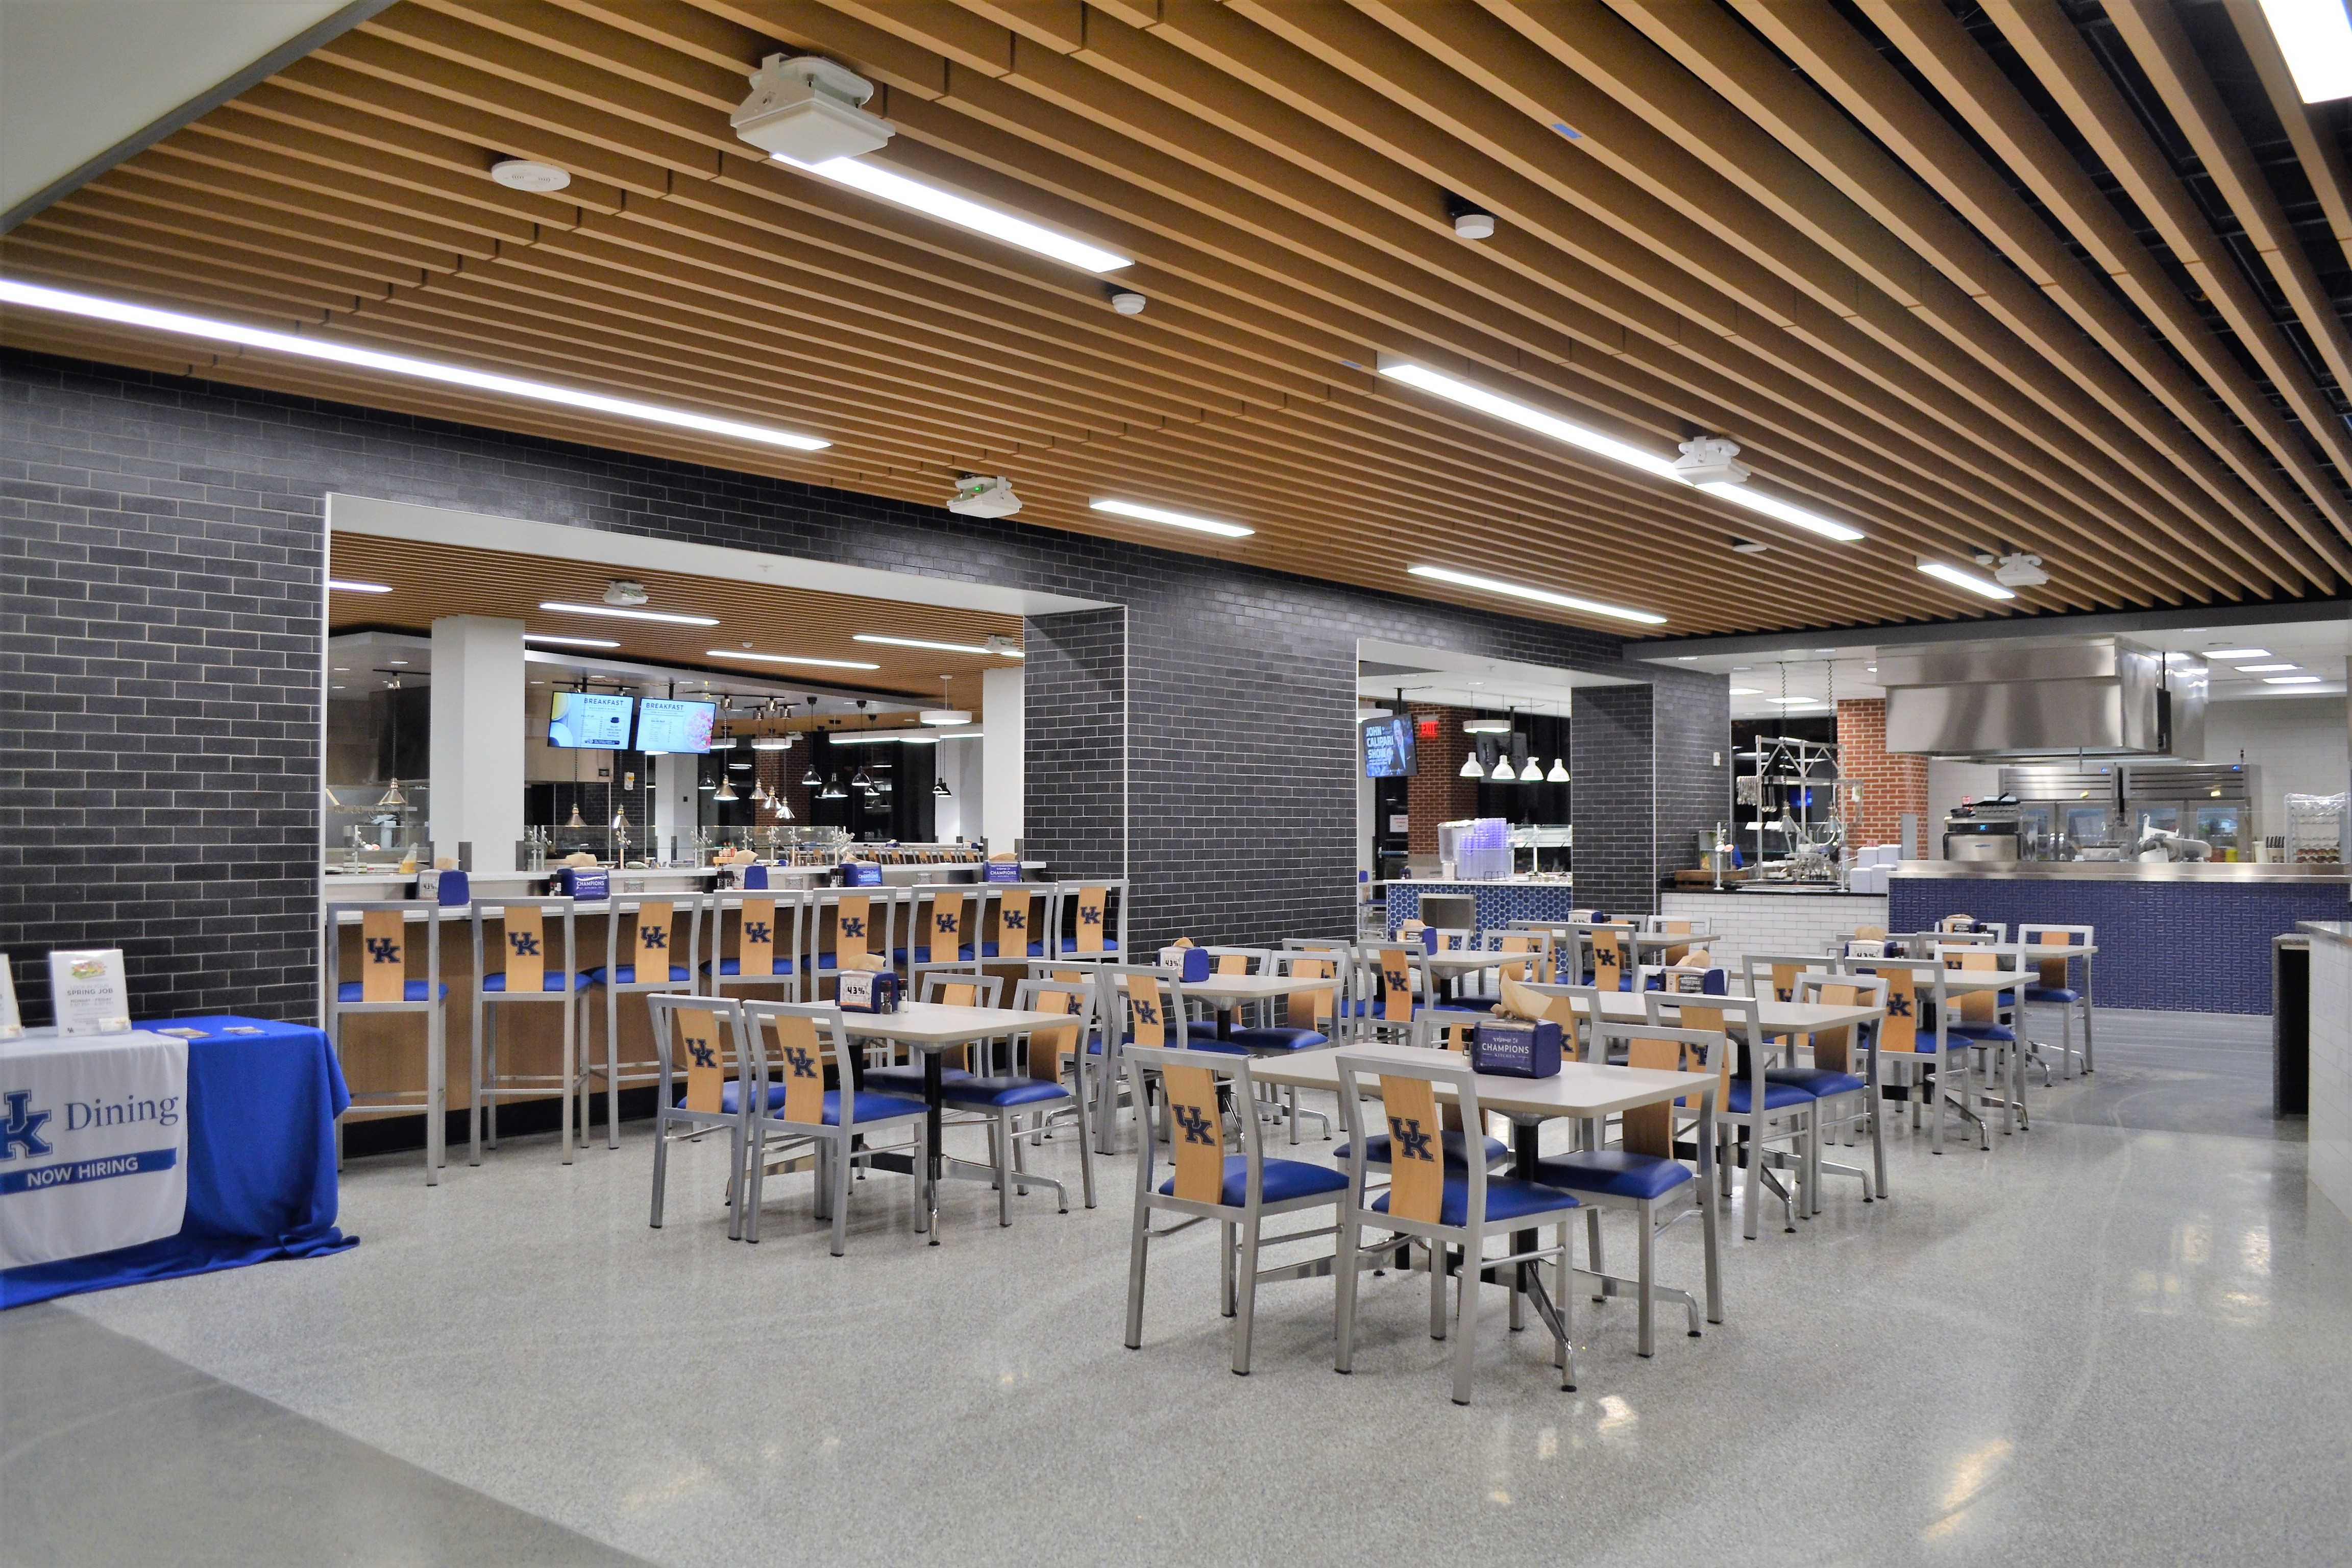 Grand Rapids Chair Jill Chair in university dining